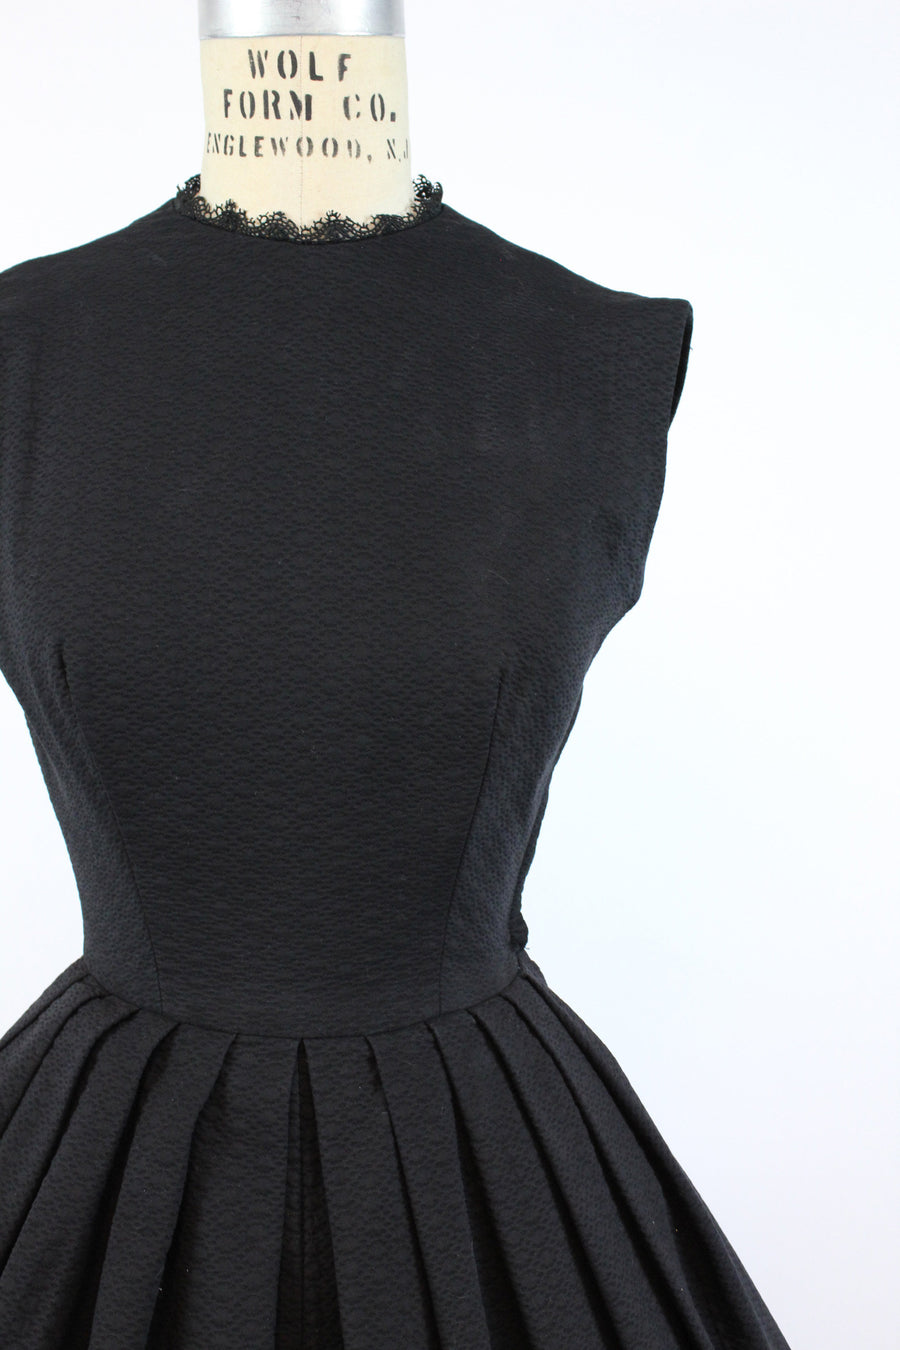 1950s Lanz cotton matelasse dress xs | vintage open back dress | new in